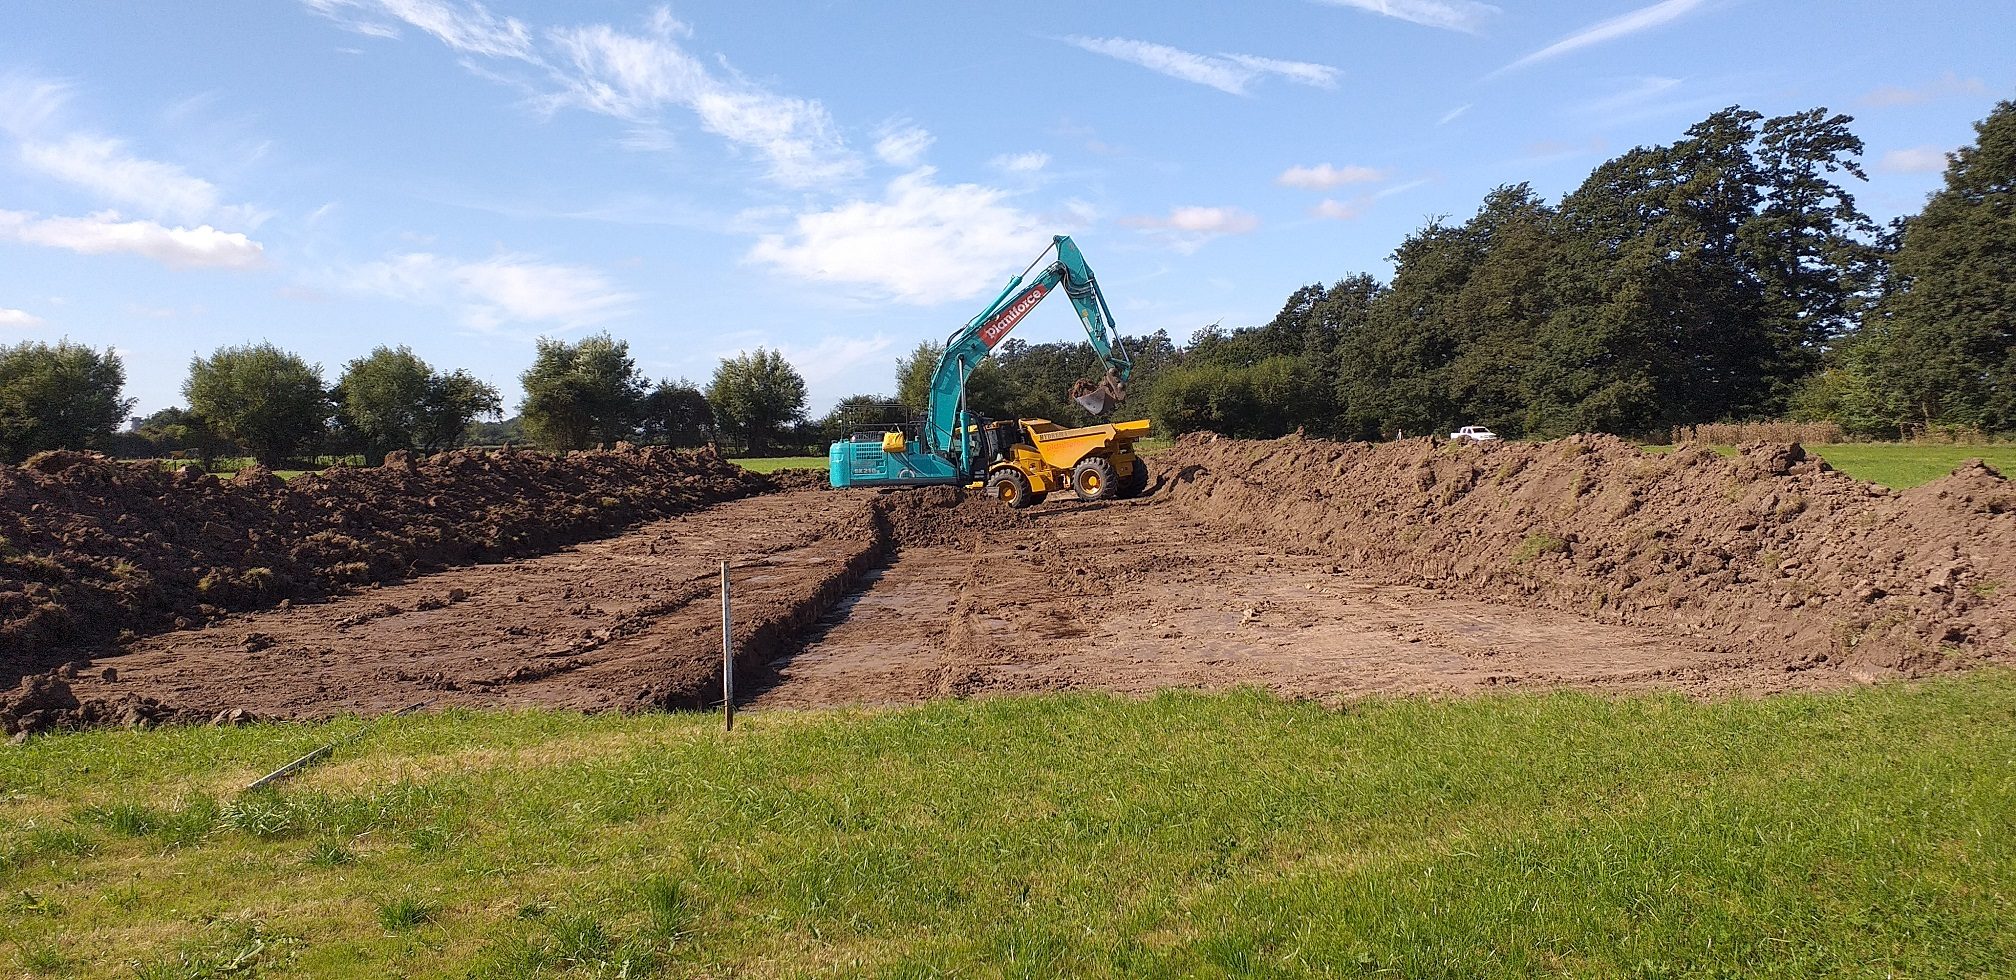 A paleo channel being excavated on the Slimbridge reserve before being reflooded